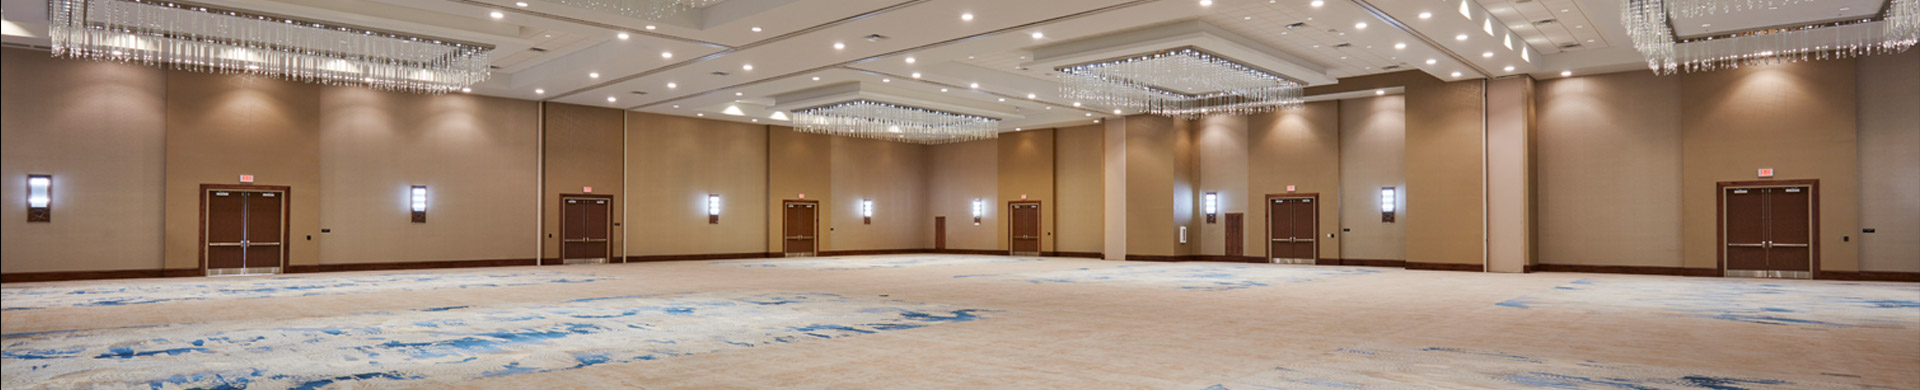 Doubletree By Hilton Orlando Seaworld empty ballroom space